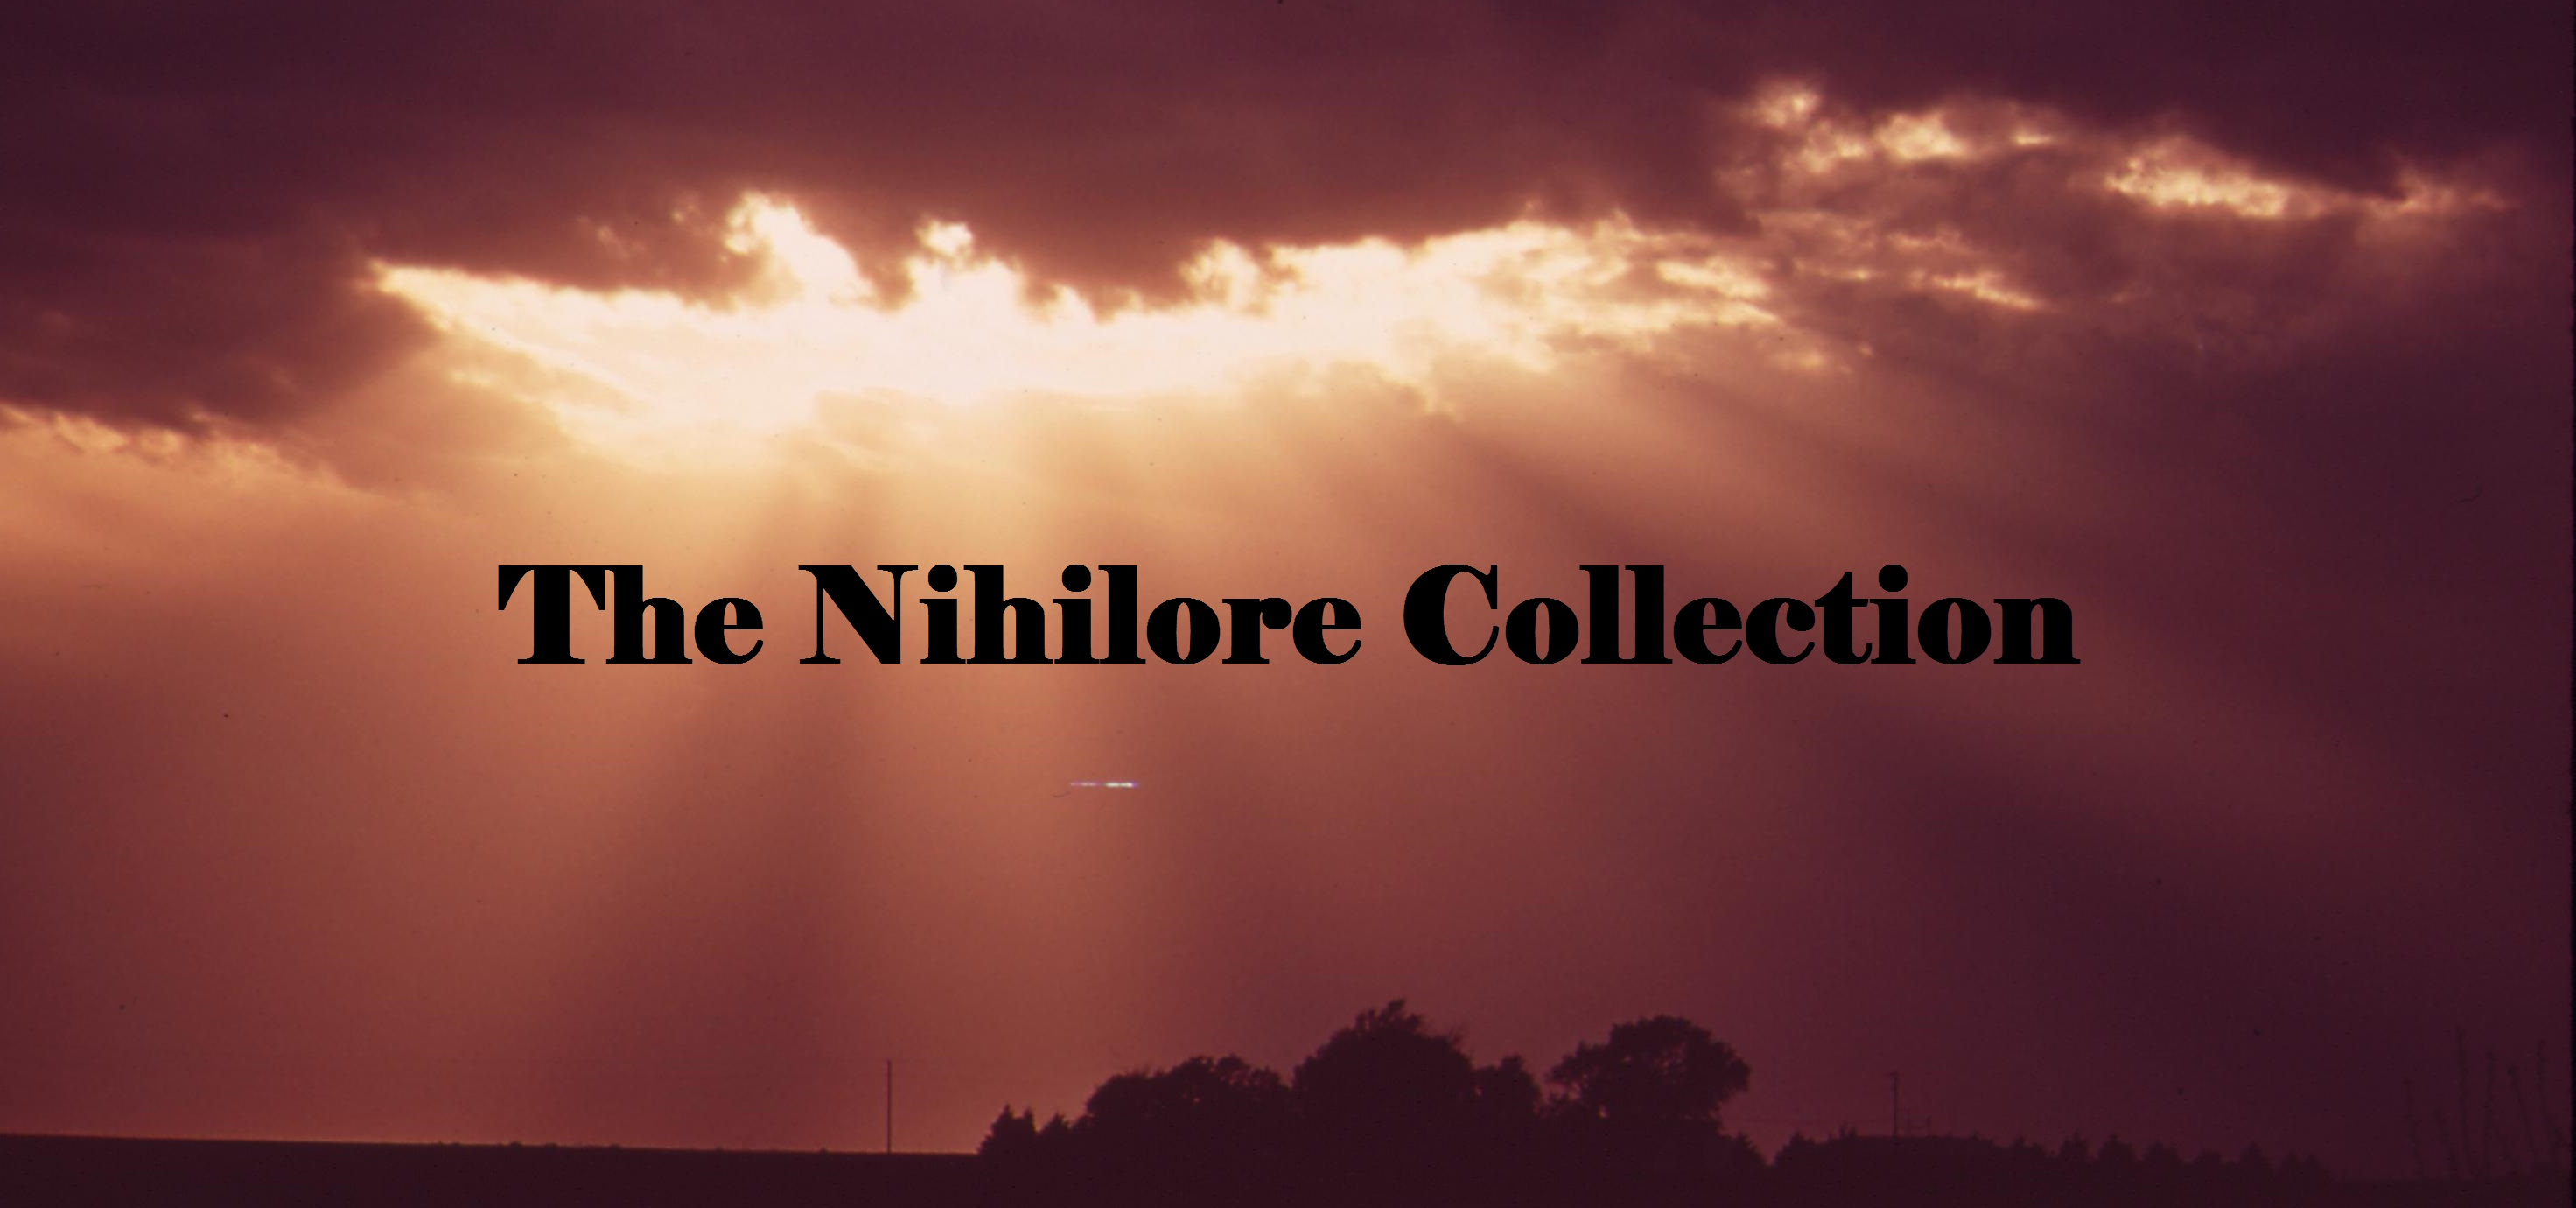 The Nihilore Collection (Creative Commons music)